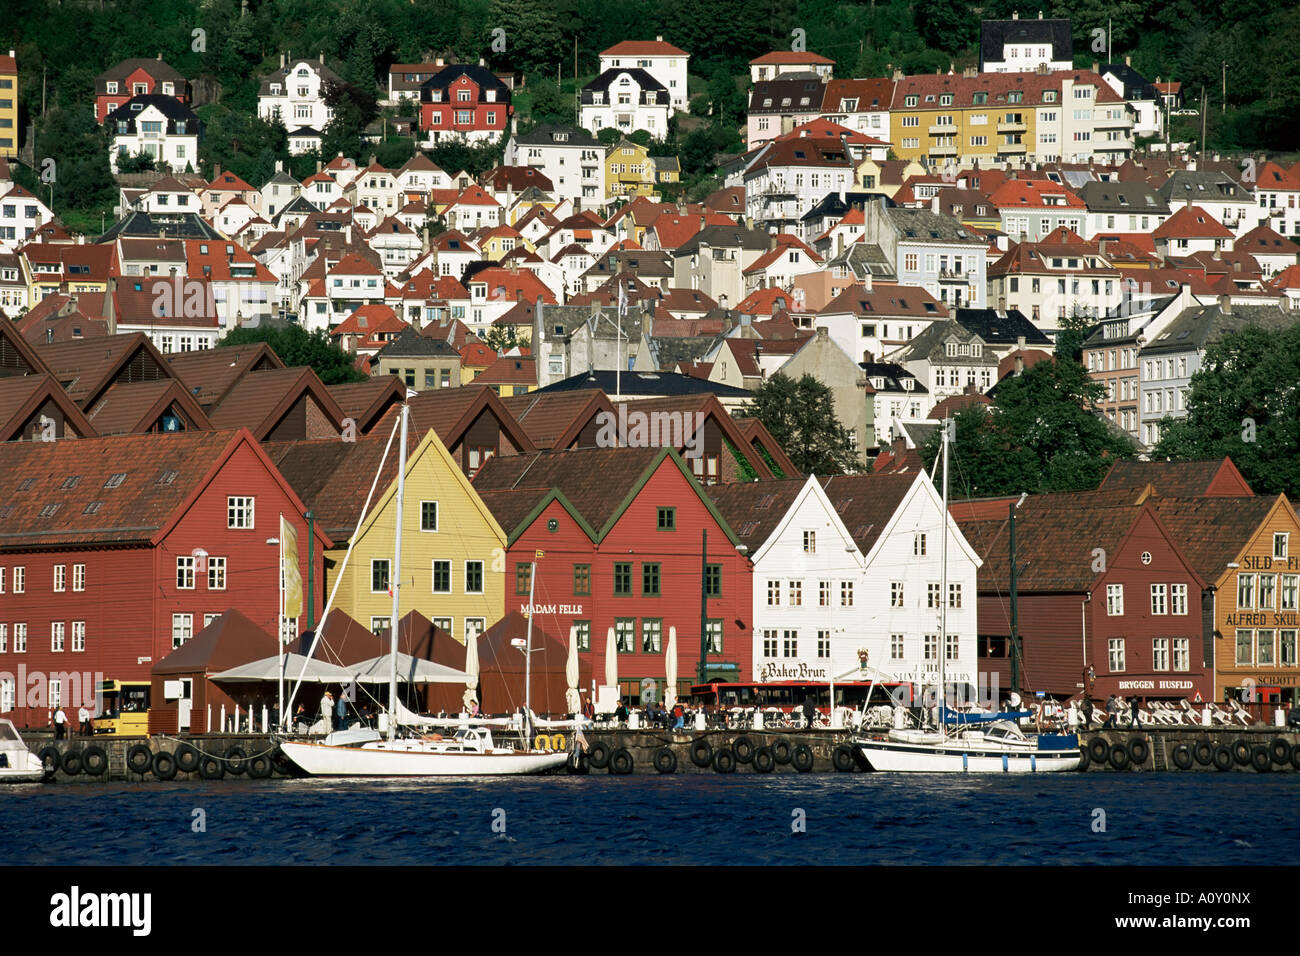 Hanseatic period wooden buildings Bryggen Bergen Norway Scandinavia Europe - Stock Image